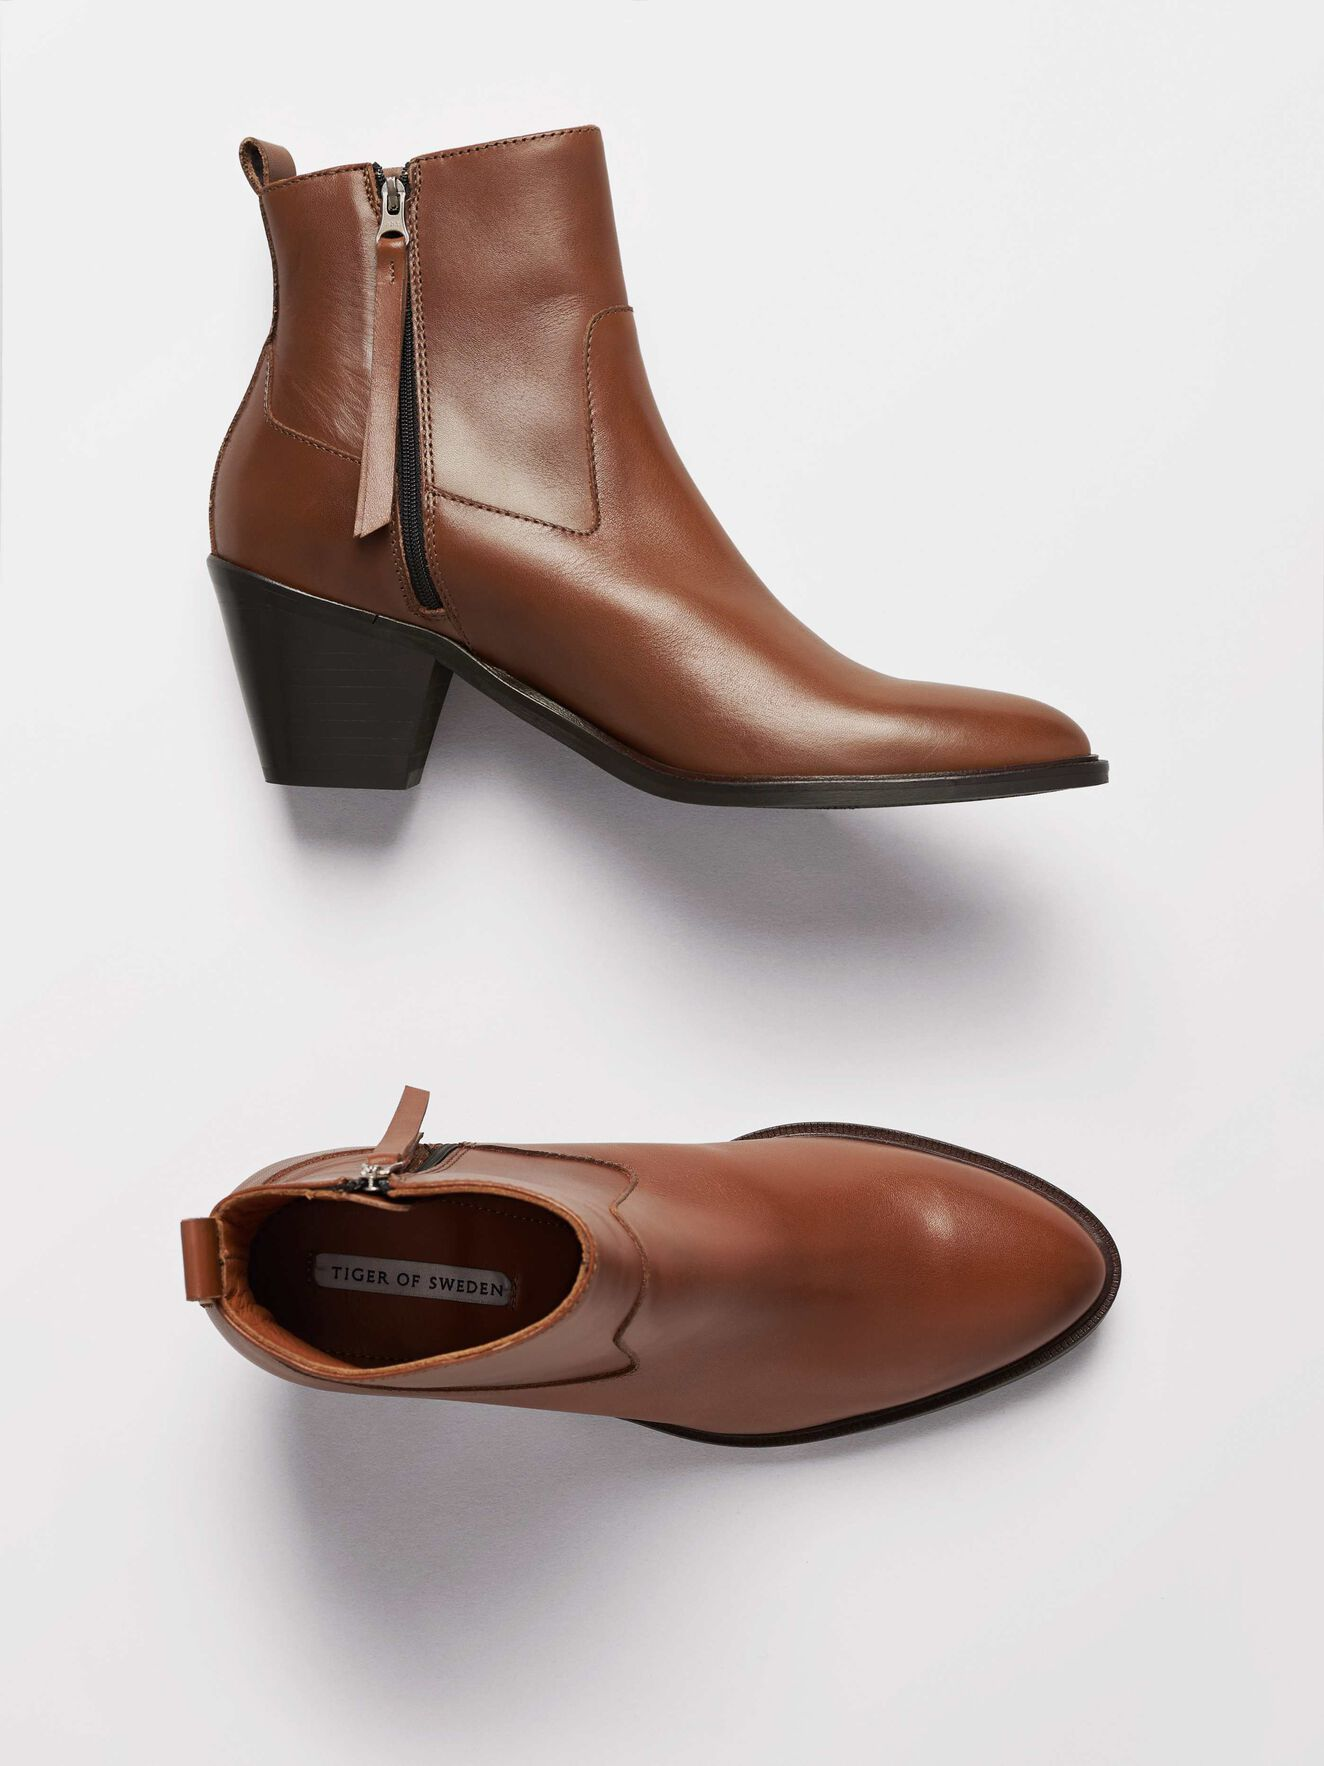 Eye Boots in Cognac from Tiger of Sweden